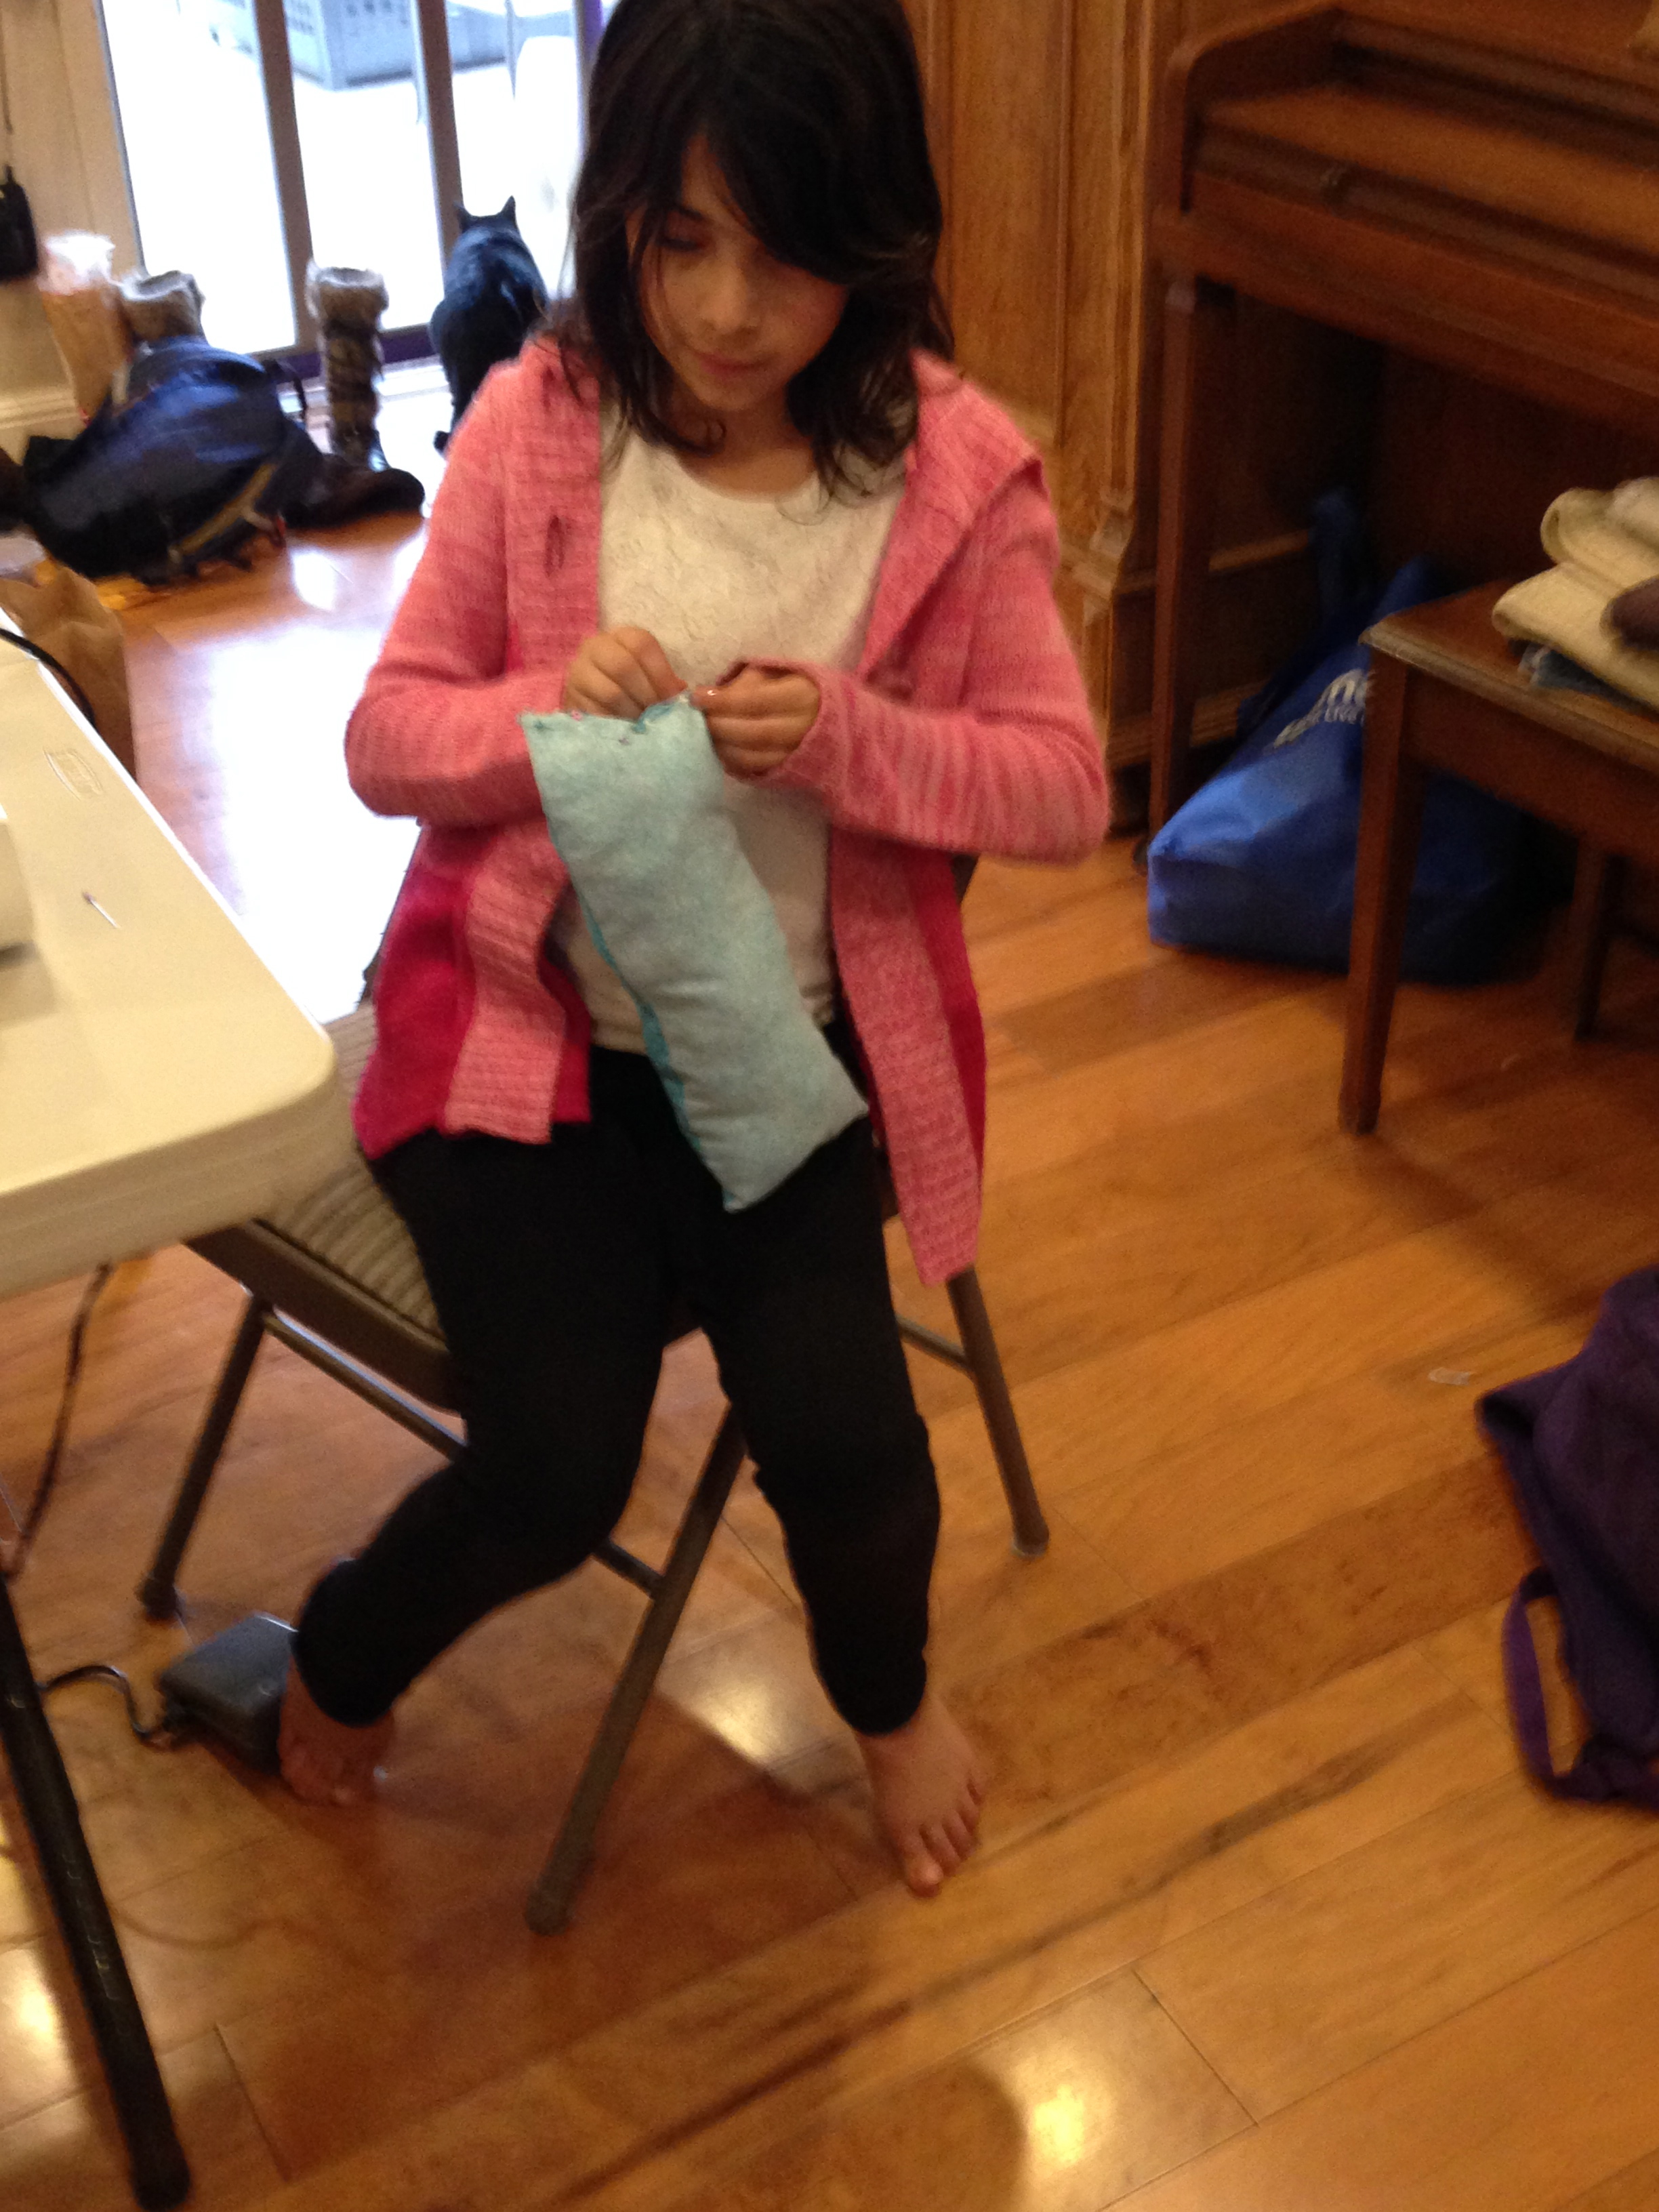 3rd grader putting the finishing touches on her pillow.